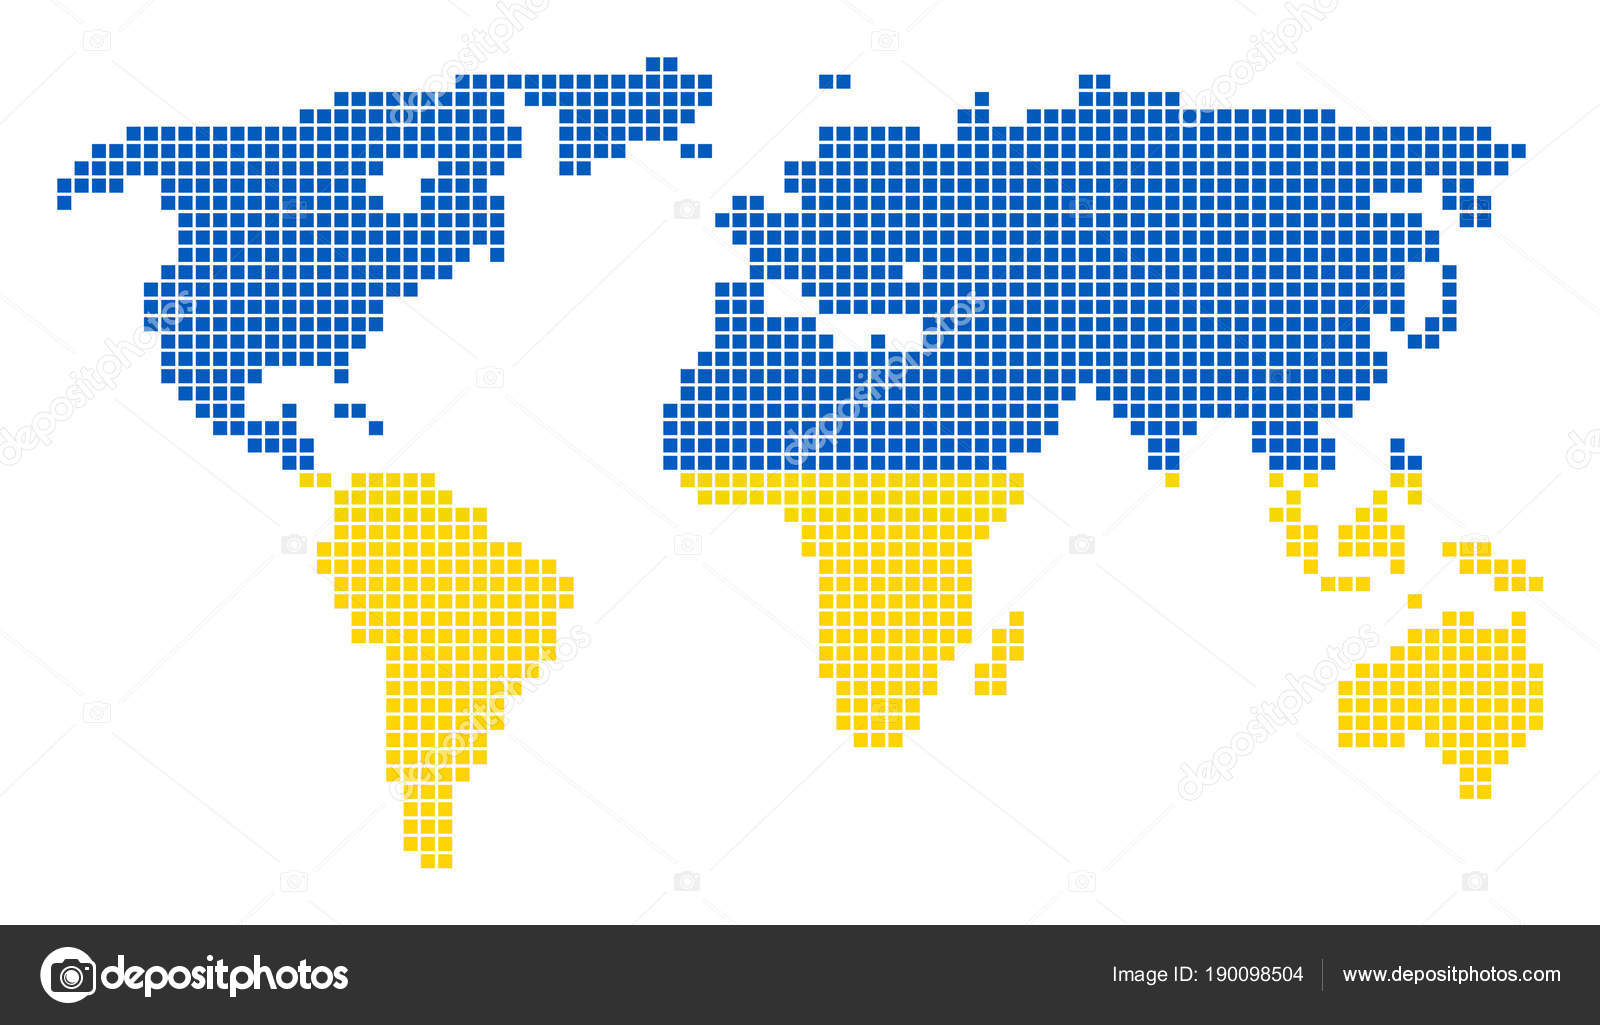 Ukraine colors dot world map stock vector ahasoft 190098504 a dotted pixel world map vector geographic map in ukraine flag colors on a white background ukrainian blue and yellow colored vector abstract pattern of gumiabroncs Gallery